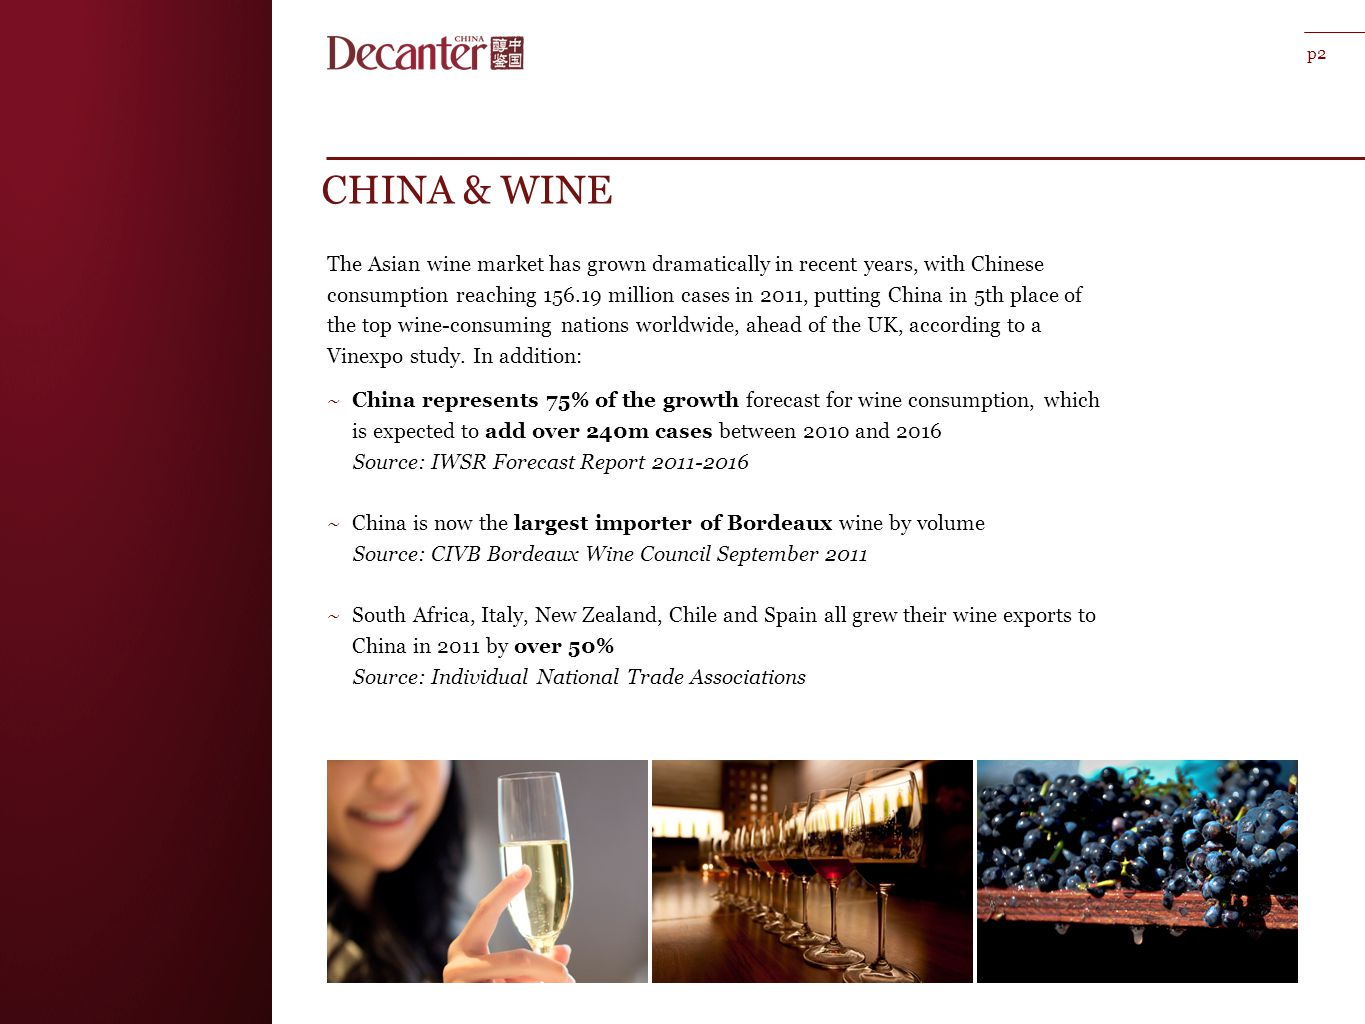 CHINA & WINE The Asian wine market has grown dramatically in recent years, with Chinese consumption reaching 156.19 million cases in 2011, putting China in 5th place of the top wine-consuming nations worldwide, ahead of the UK, according to a Vinexpo study.